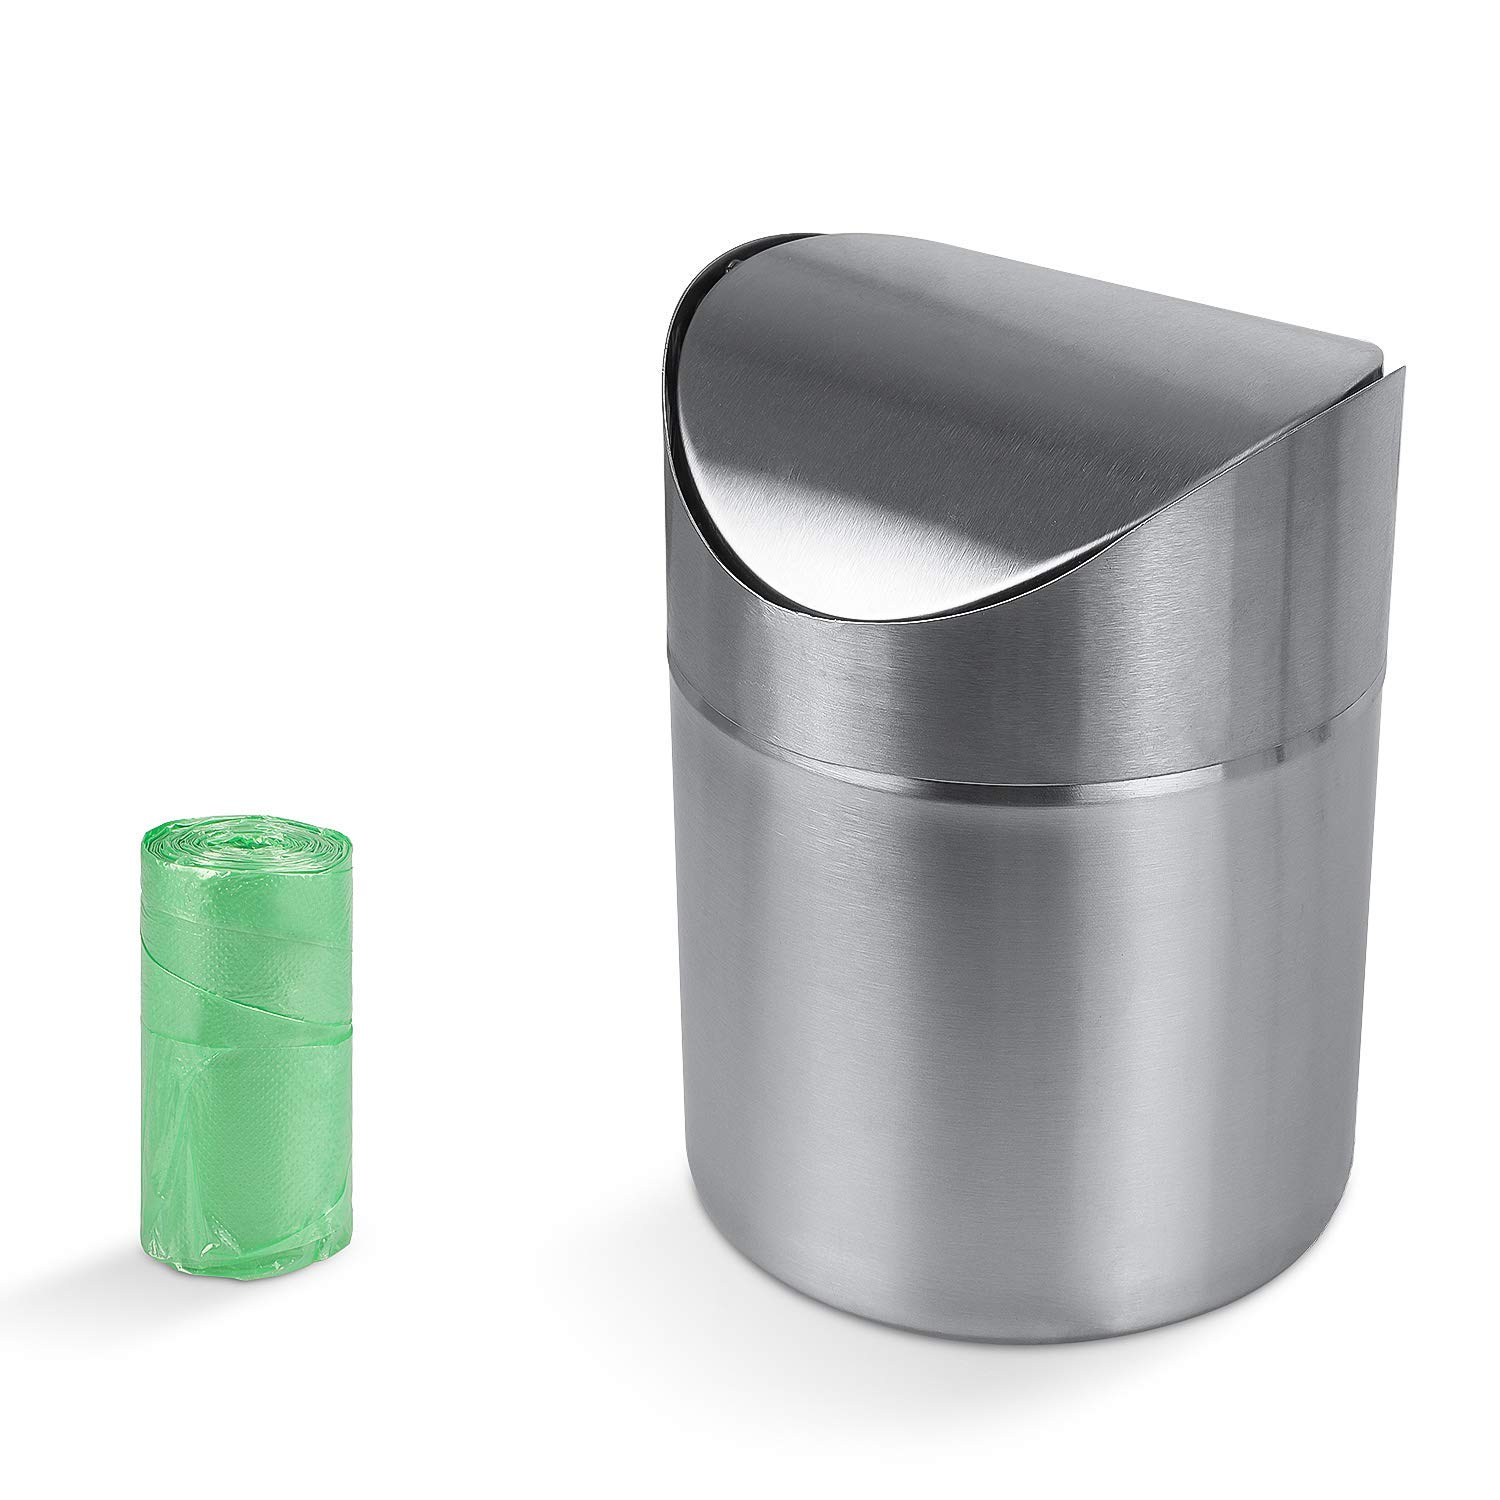 AMAZECO Mini Countertop Brushed Can Stainless Steel Swing Lid Trash Can Set, Come with Trash Bag, 1.5 L / 0.40 Gal Silver Color